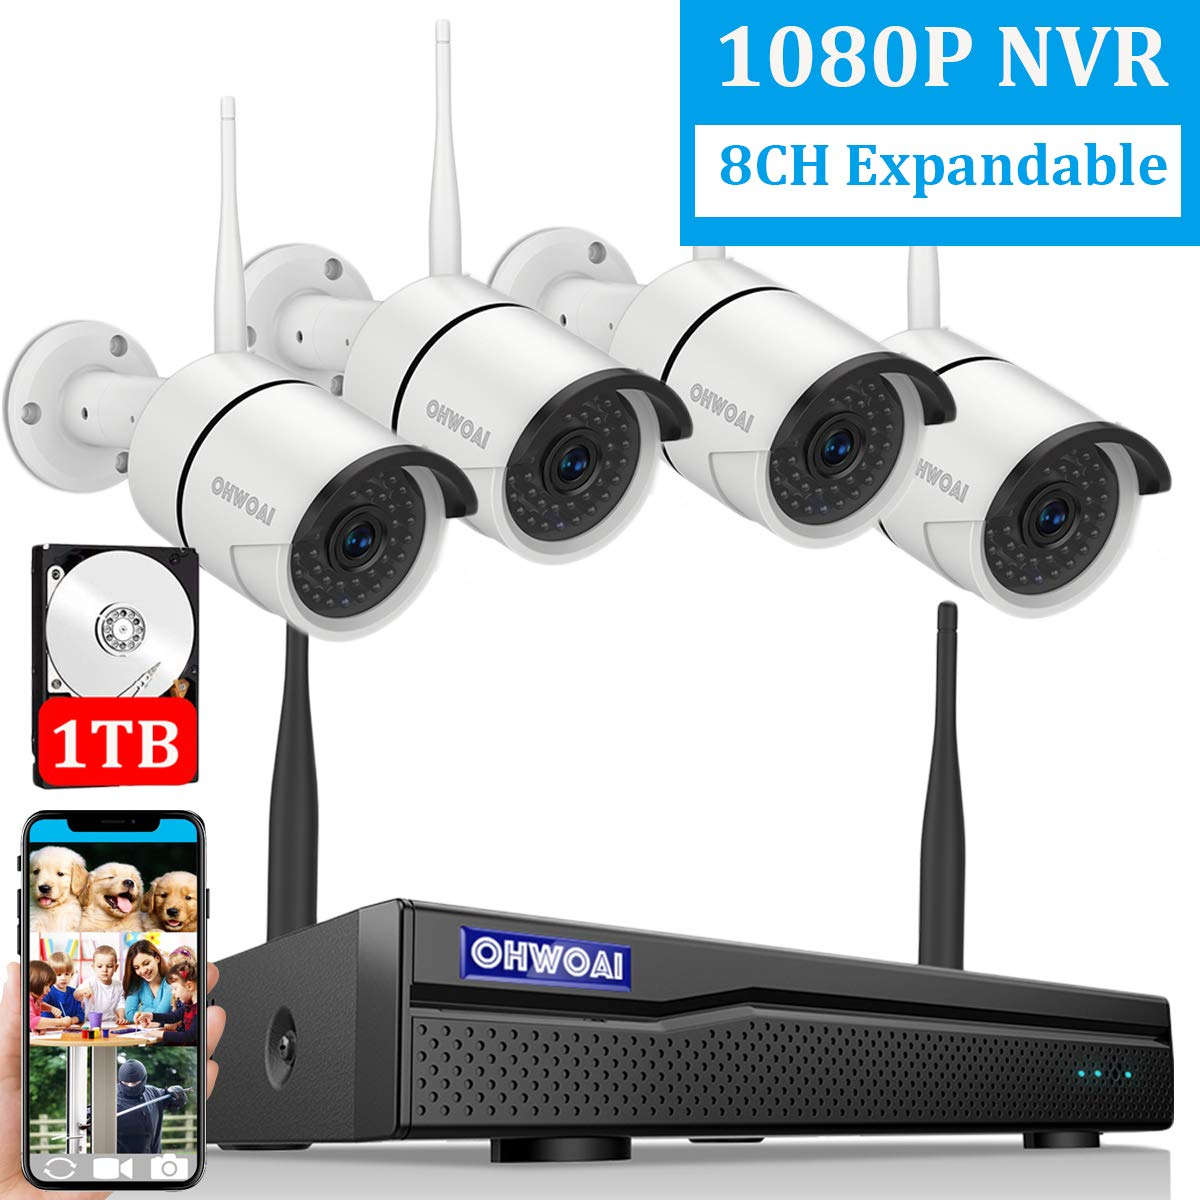 ?2019 New 8CH Expandable?OHWOAI Security Camera System Wireless, 8CH 1080P NVR, 4Pcs 720P HD Outdoor/ Indoor IP Cameras,Home CCTV Surveillance System(1TB Hard Drive)Waterproof,Remote Access,Plug&Play